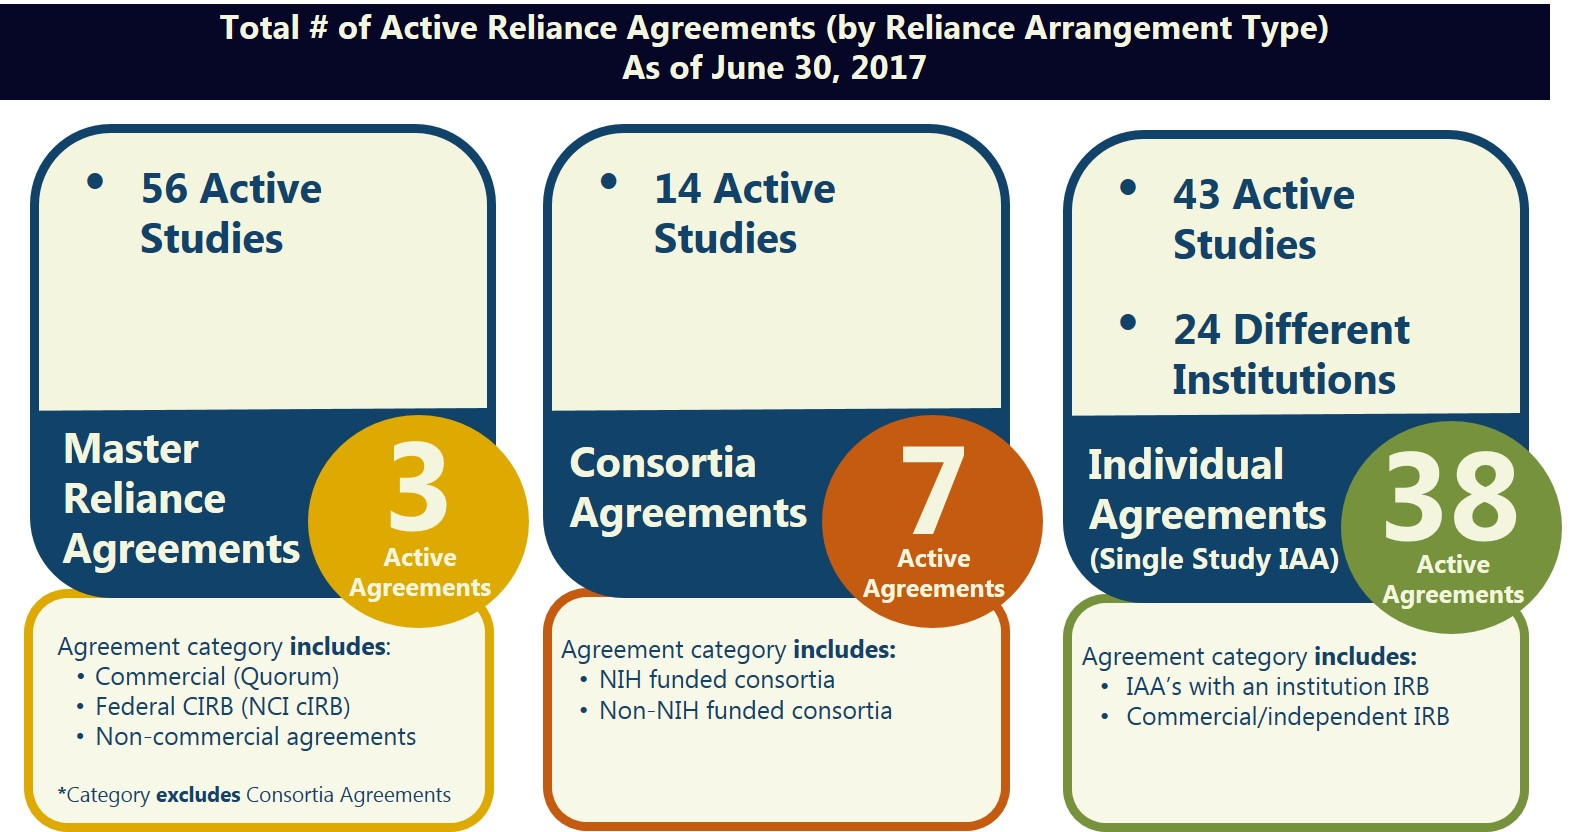 Active Reliance Agreements - contact hrpp@umn.edu for information